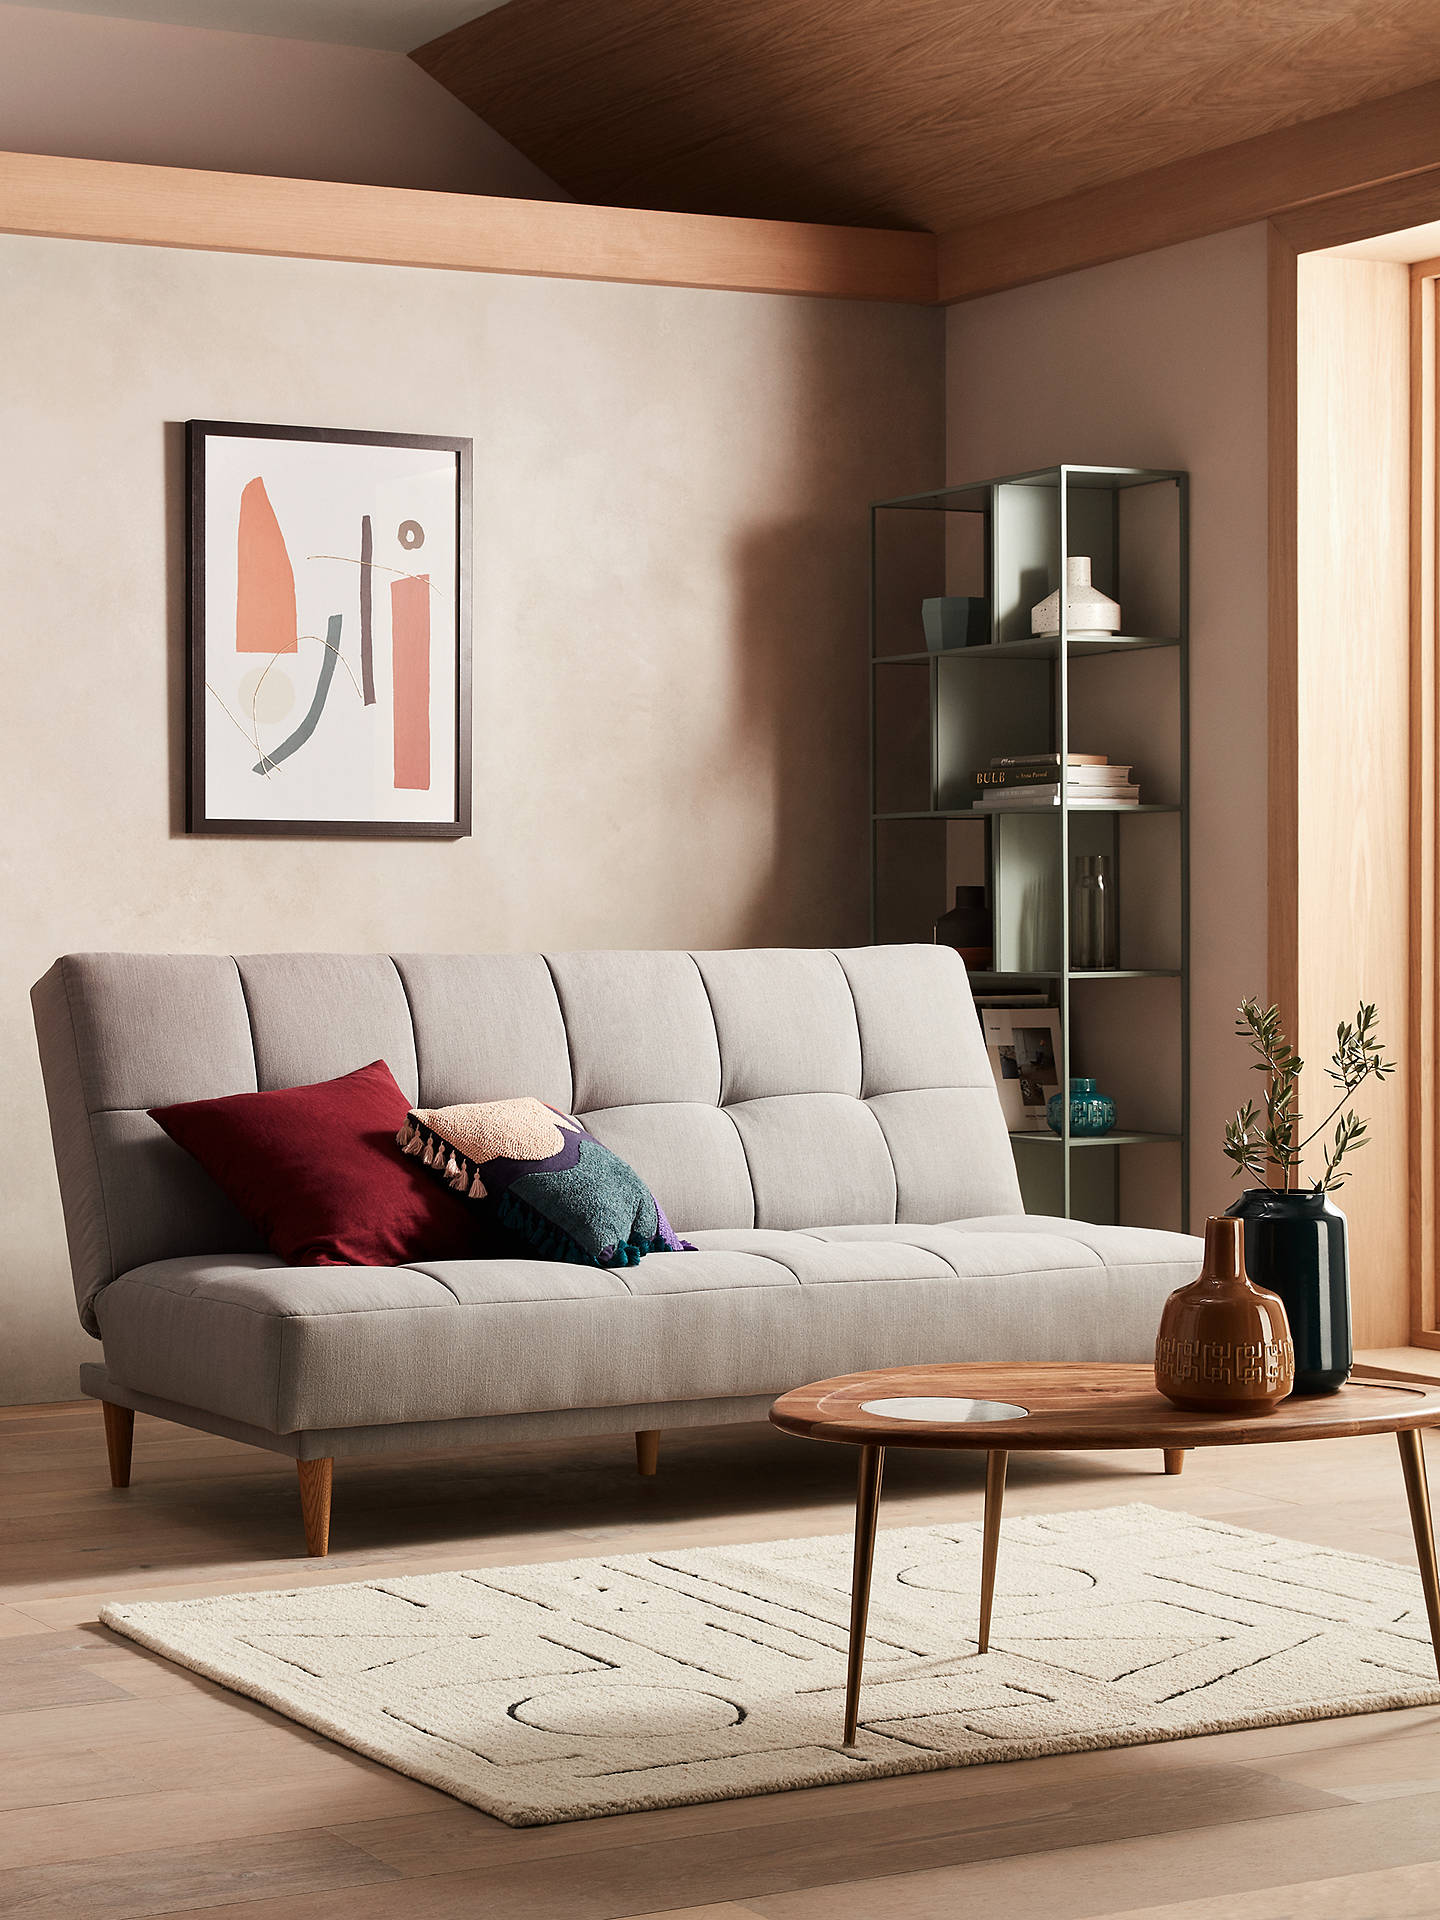 Buy John Lewis & Partners Linear Medium 2 Seater Sofa Bed, Light Leg, Topaz Natural Online at johnlewis.com